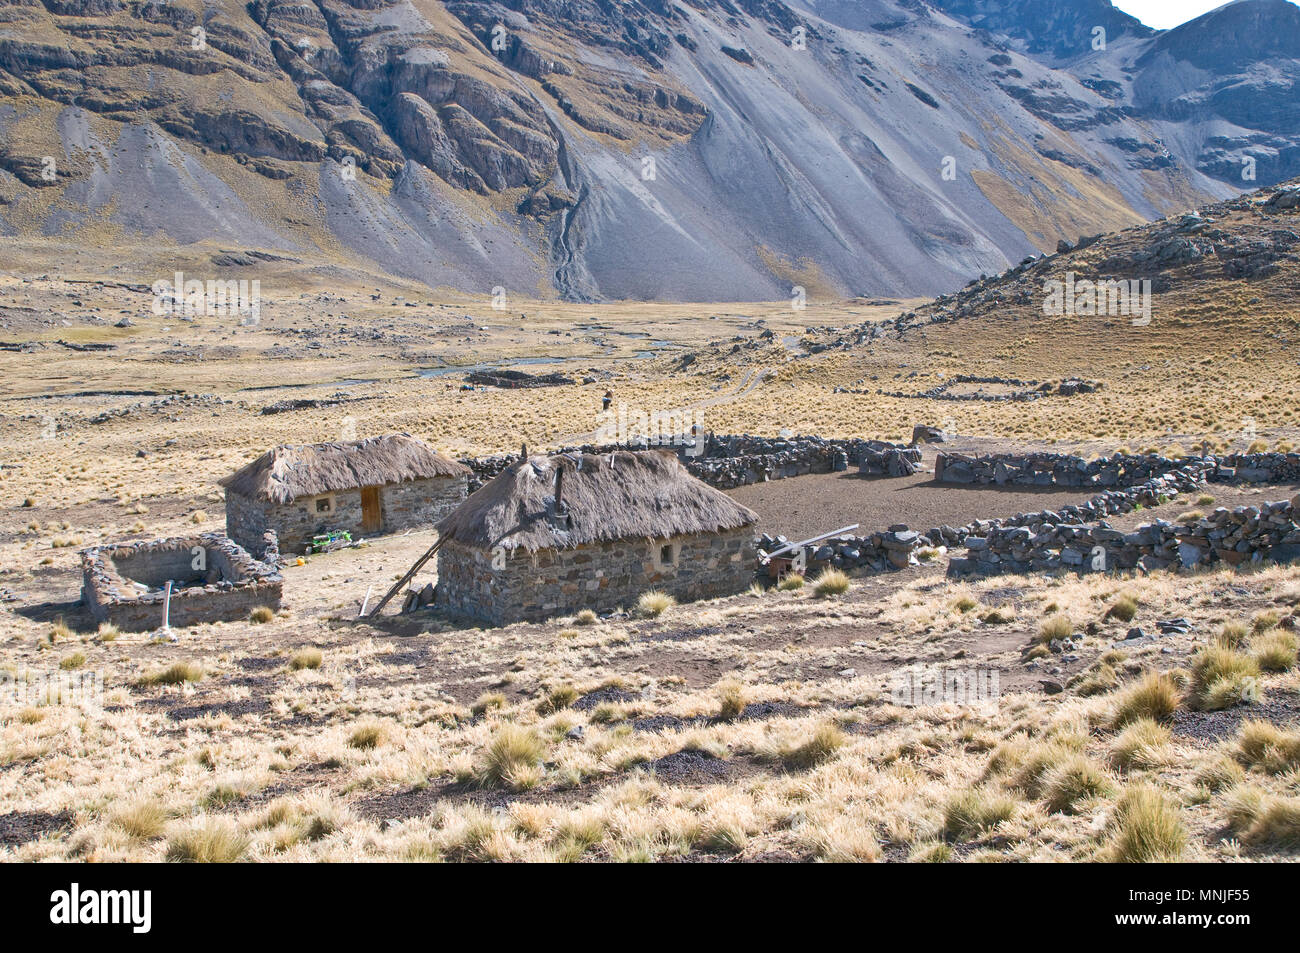 A farm high in the Bolivian Andes at over 12,000ft. - Stock Image